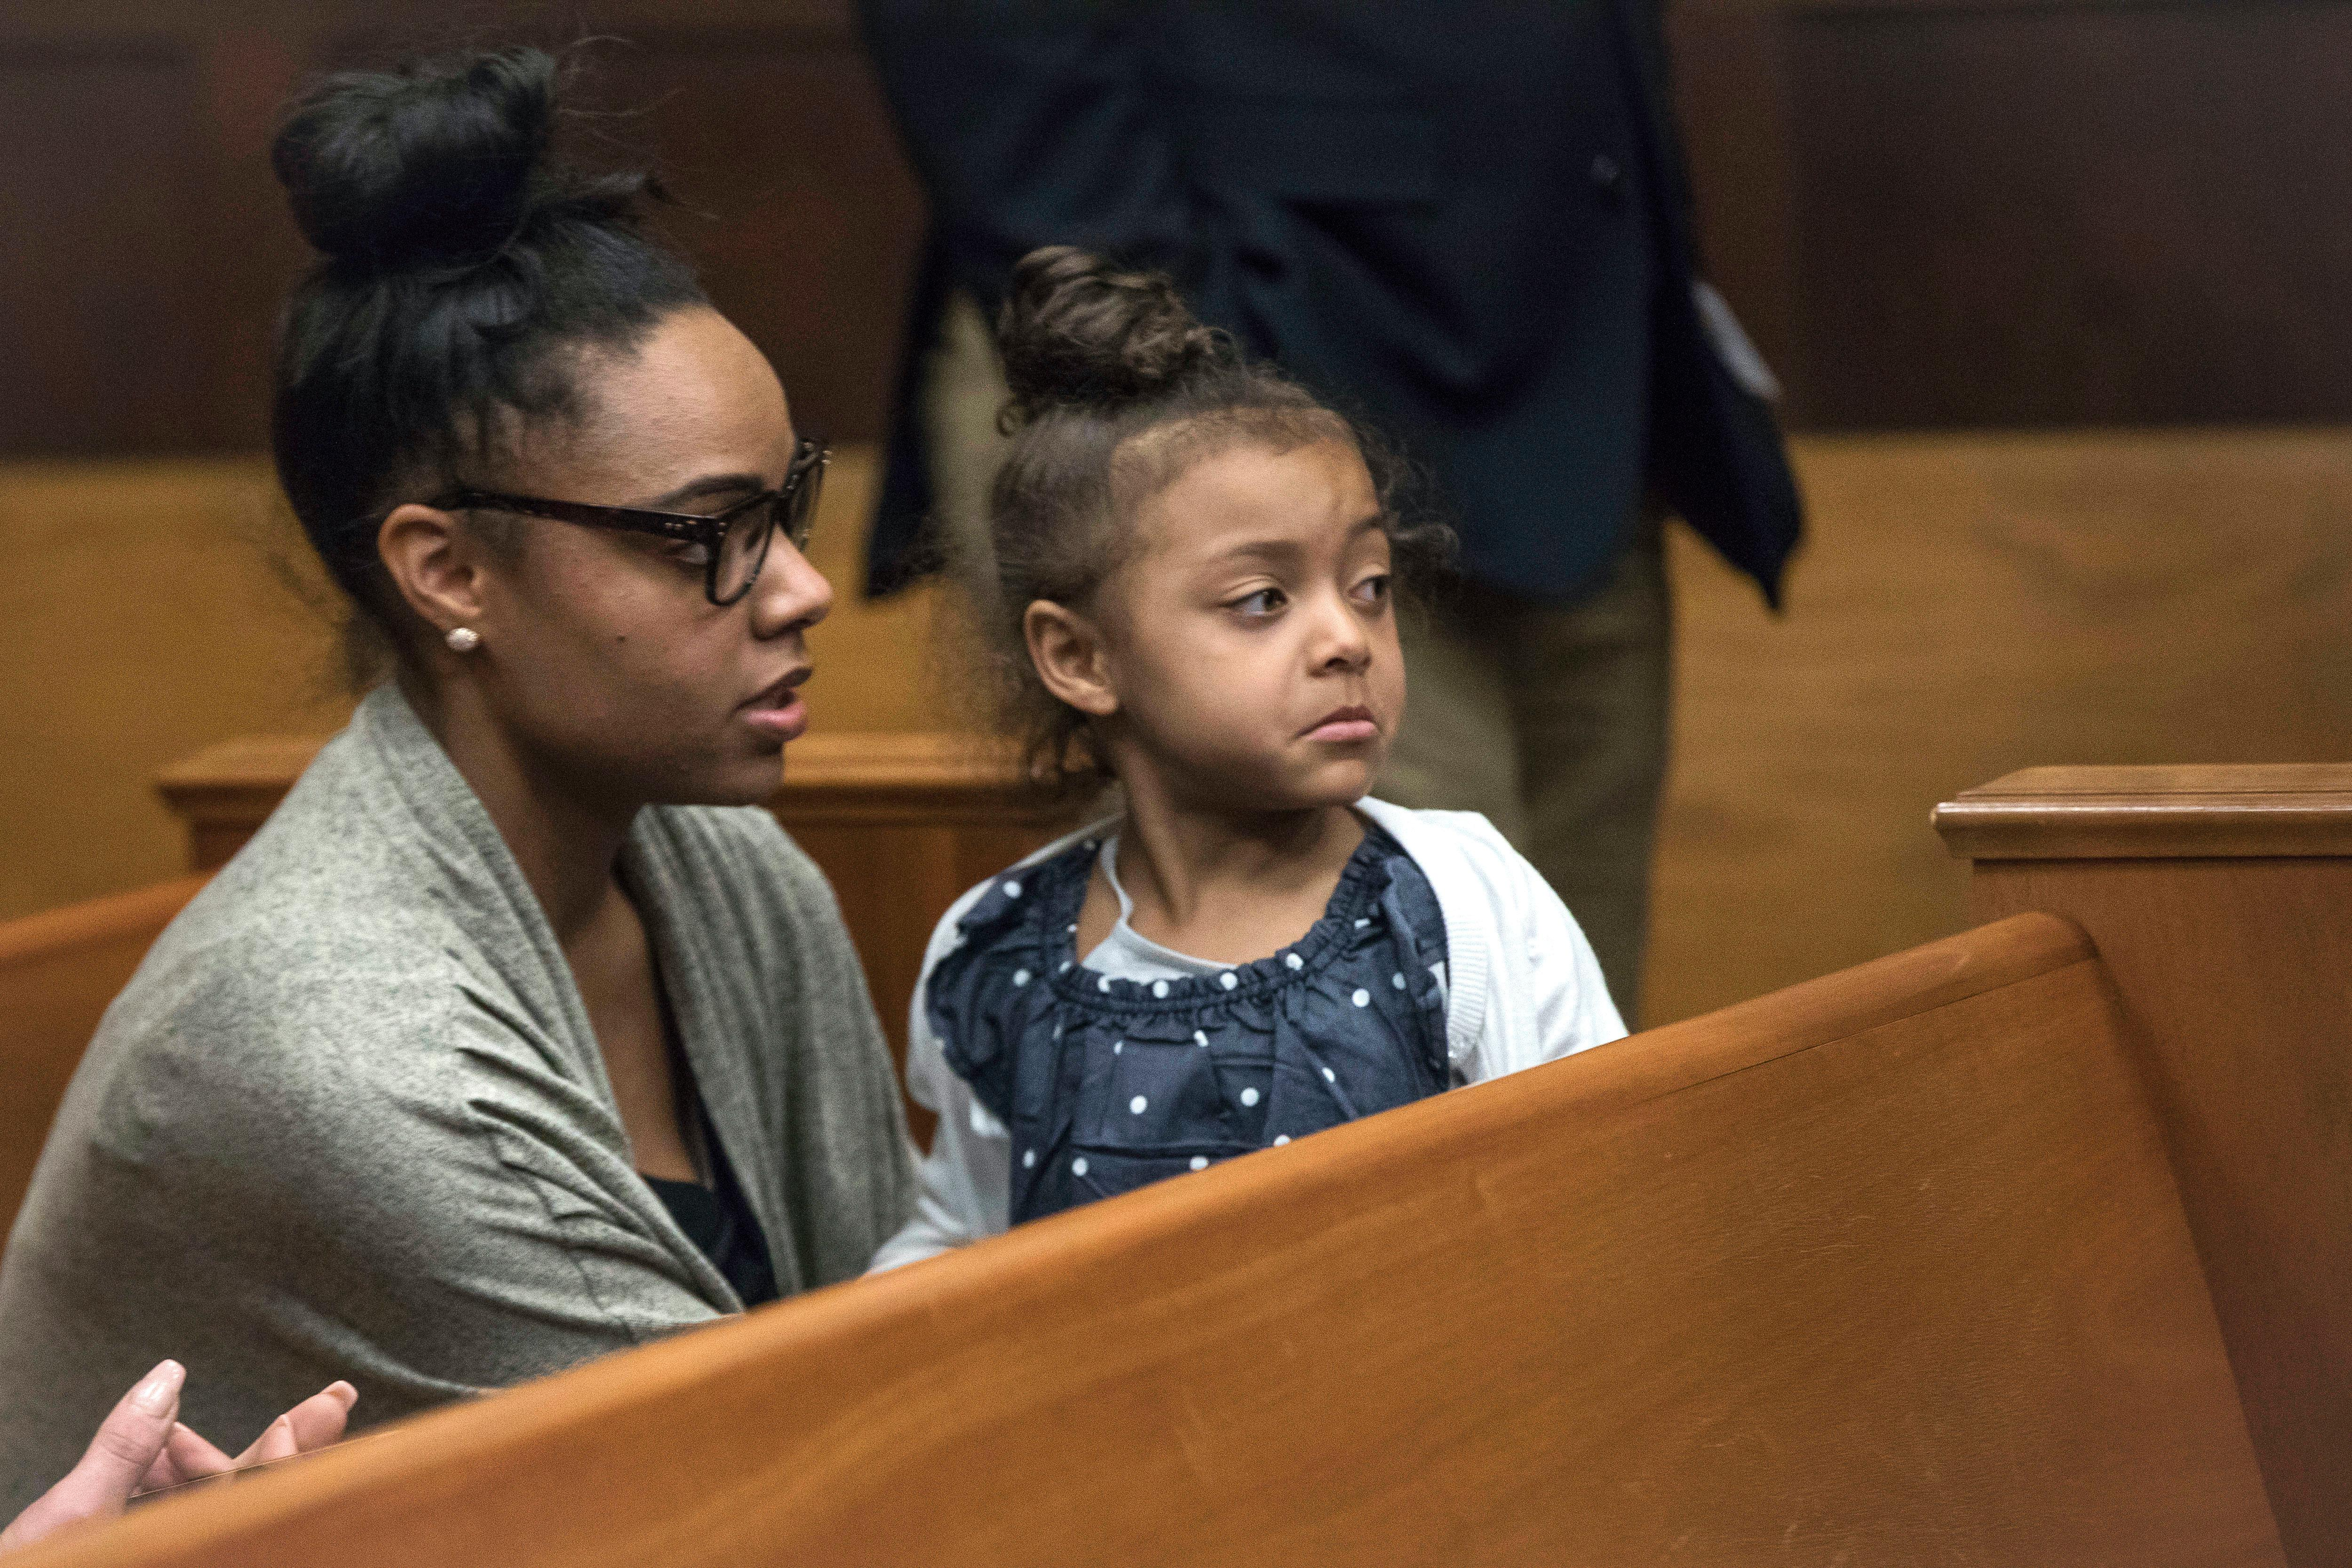 FILE - In this Wednesday, April 12, 2017, file photo, Shayanna Jenkins Hernandez, fiancee of former New England Patriots tight end Aaron Hernandez, sits in the courtroom with the couple's daughter during jury deliberations in Hernandez's double-murder trial at Suffolk Superior Court in Boston. Hernandez was acquitted of those crimes on Friday, but hanged himself in his prison early Wednesday, April 19, 2017, where he was serving a life sentence in the 2013 killing of semi-professional football player Odin Lloyd. (Keith Bedford/The Boston Globe via AP, Pool, File)